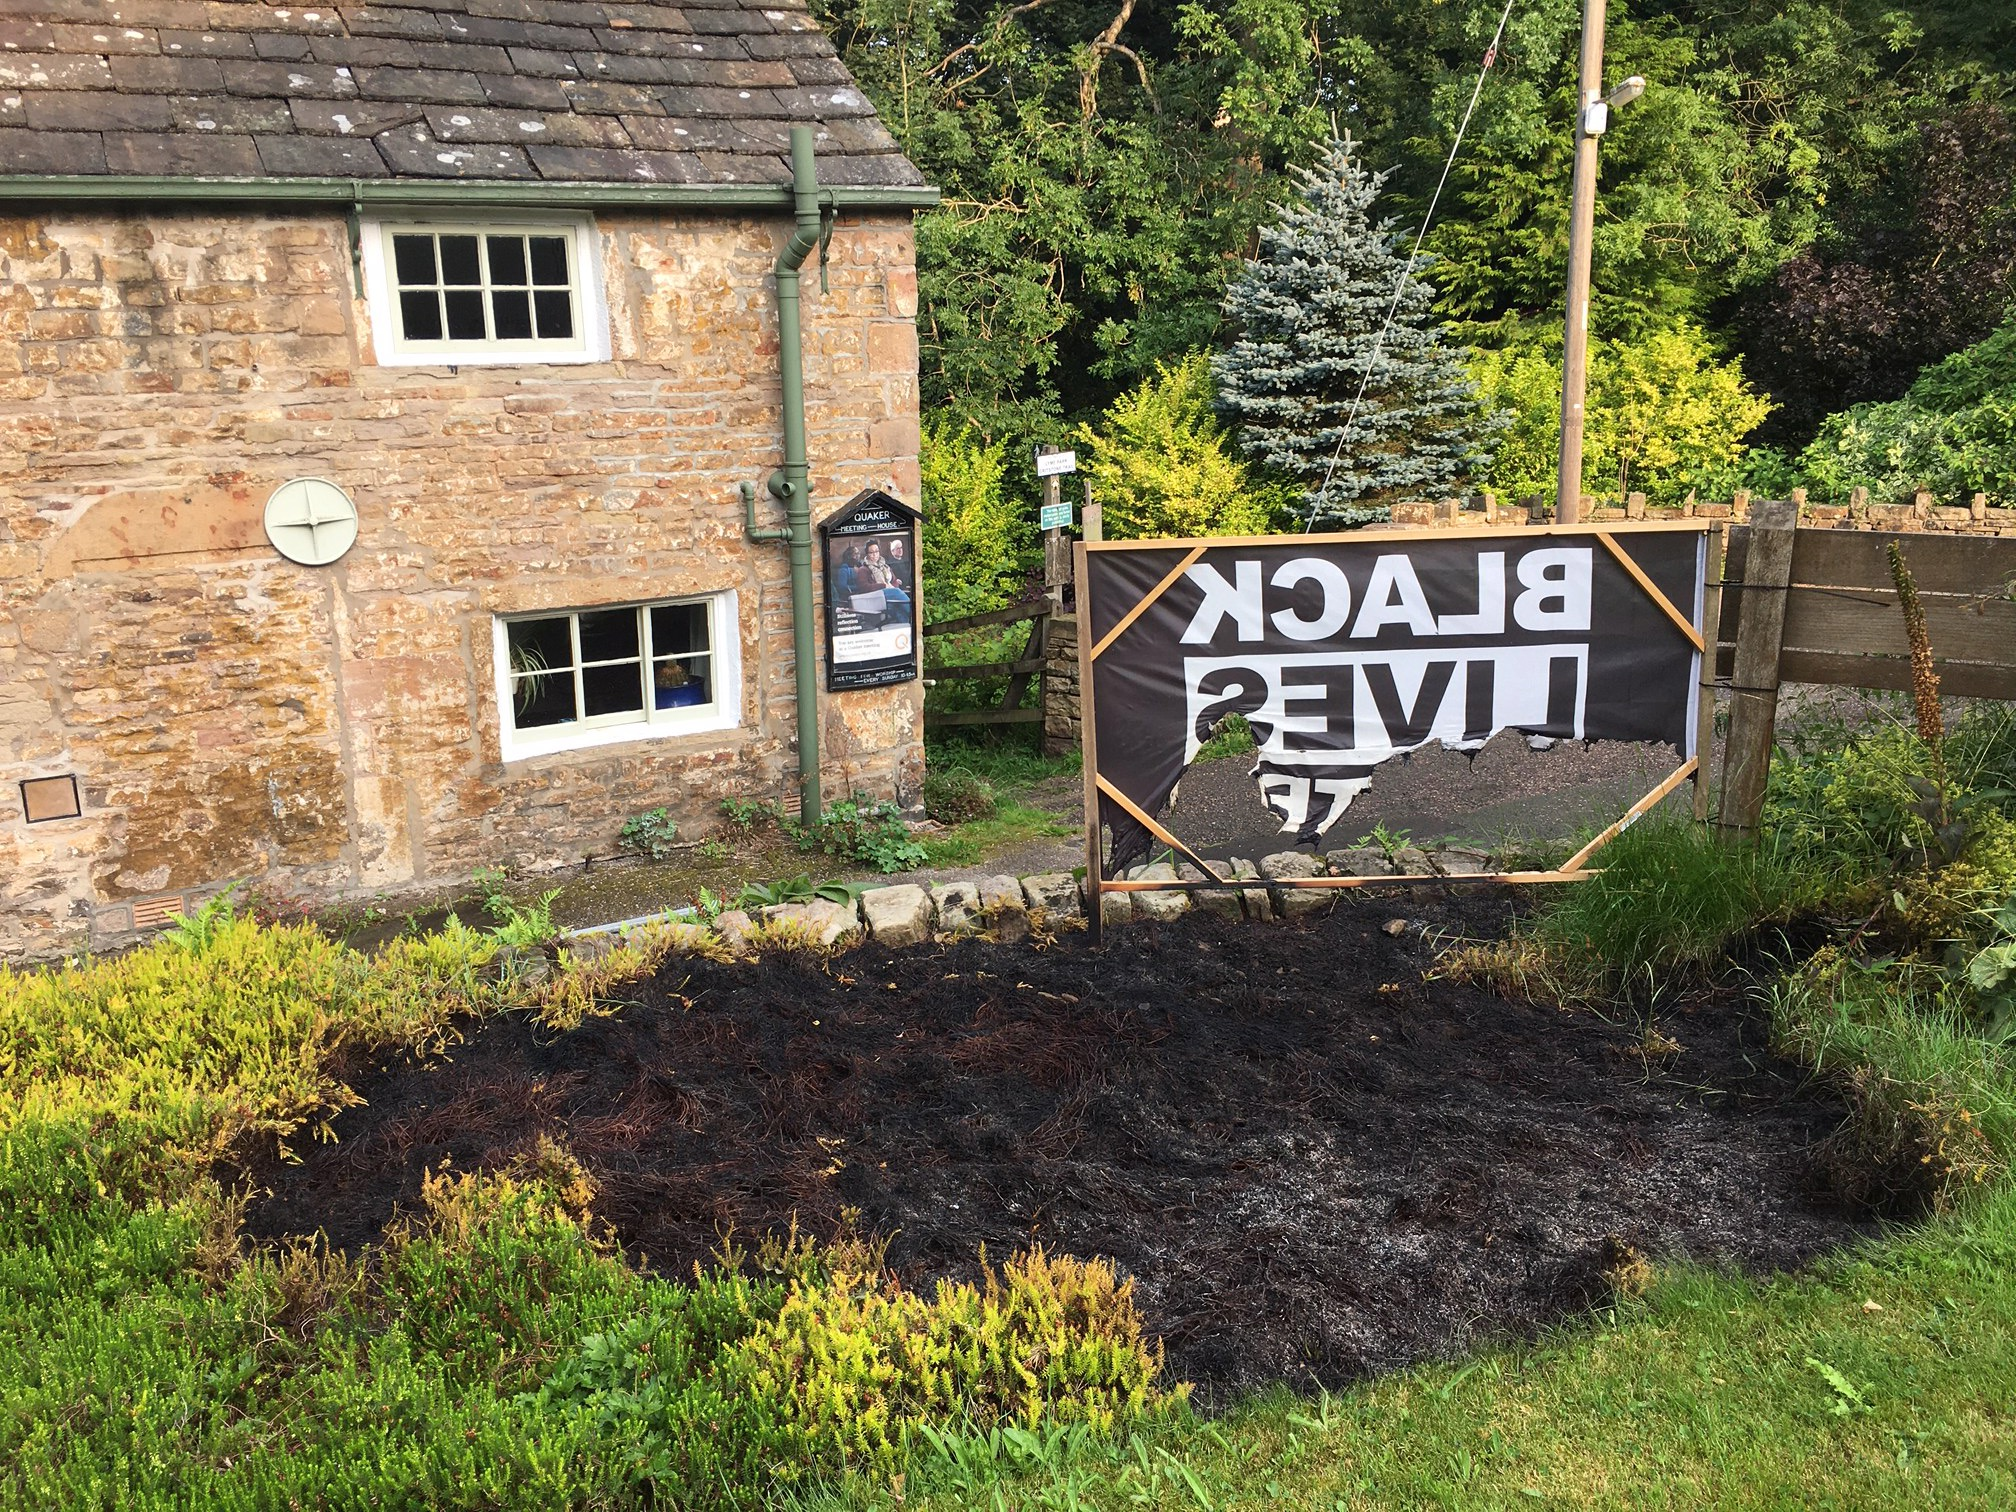 Disley Quaker Meeting BLM Banner on the morning after the fire, 11 August 2020